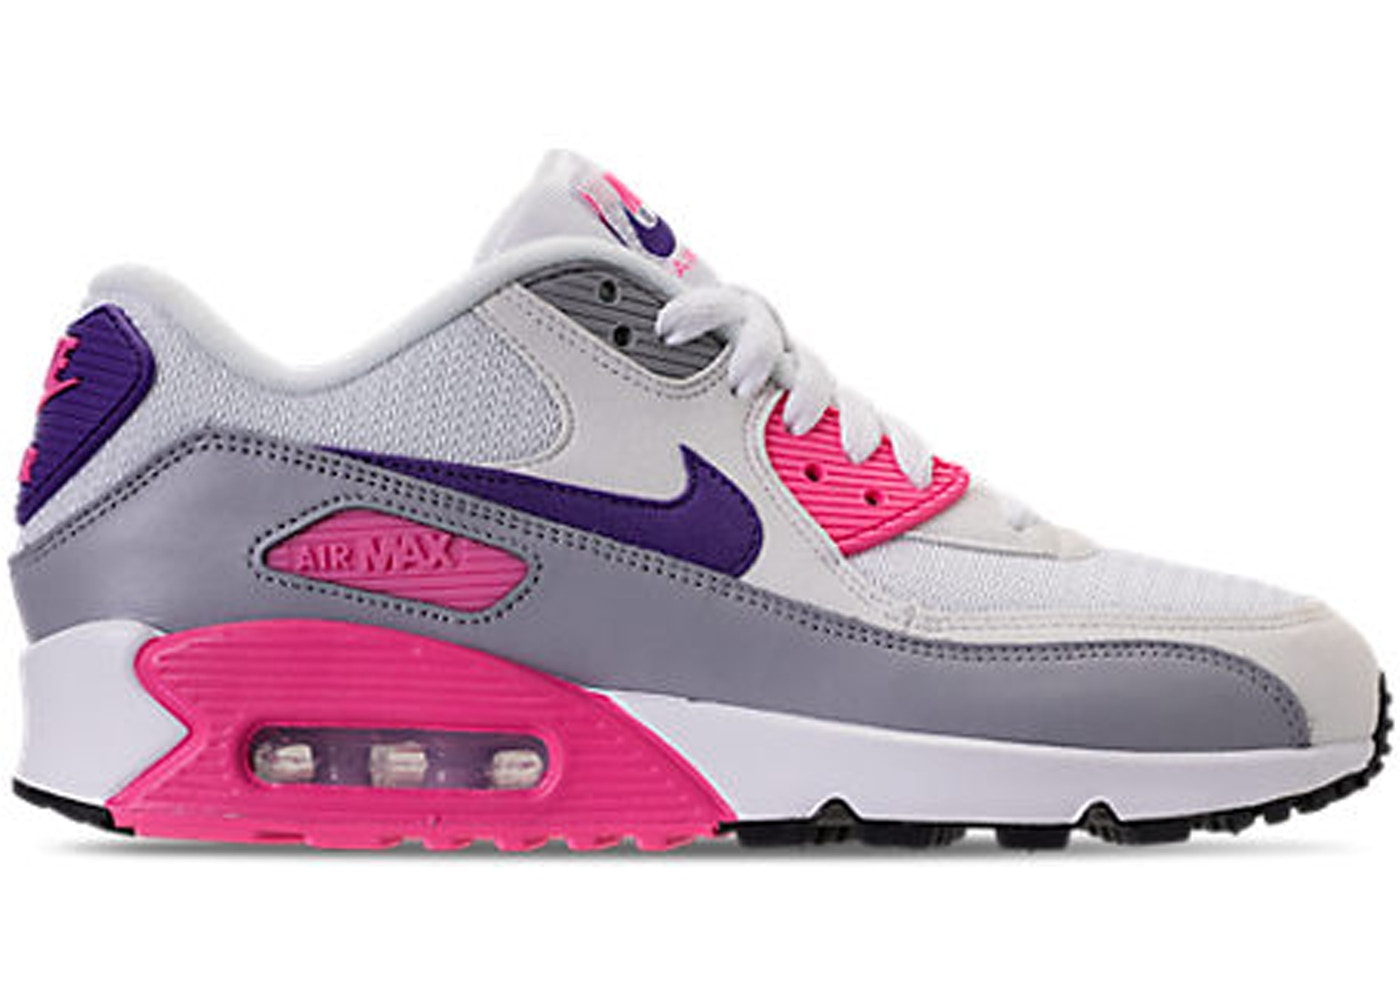 1f47282c3341 Air Max 90 Laser Pink 2018 (W) - 325213-136